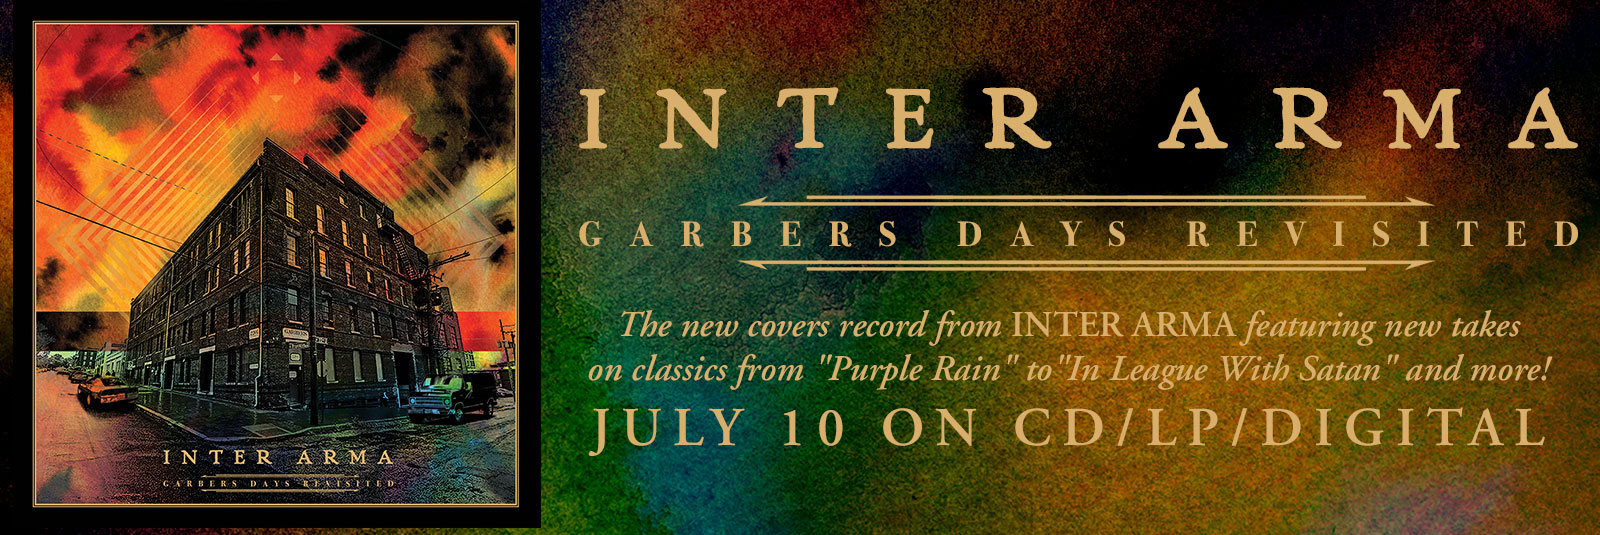 inter-arma-garbers-days-revisited-relapse-records